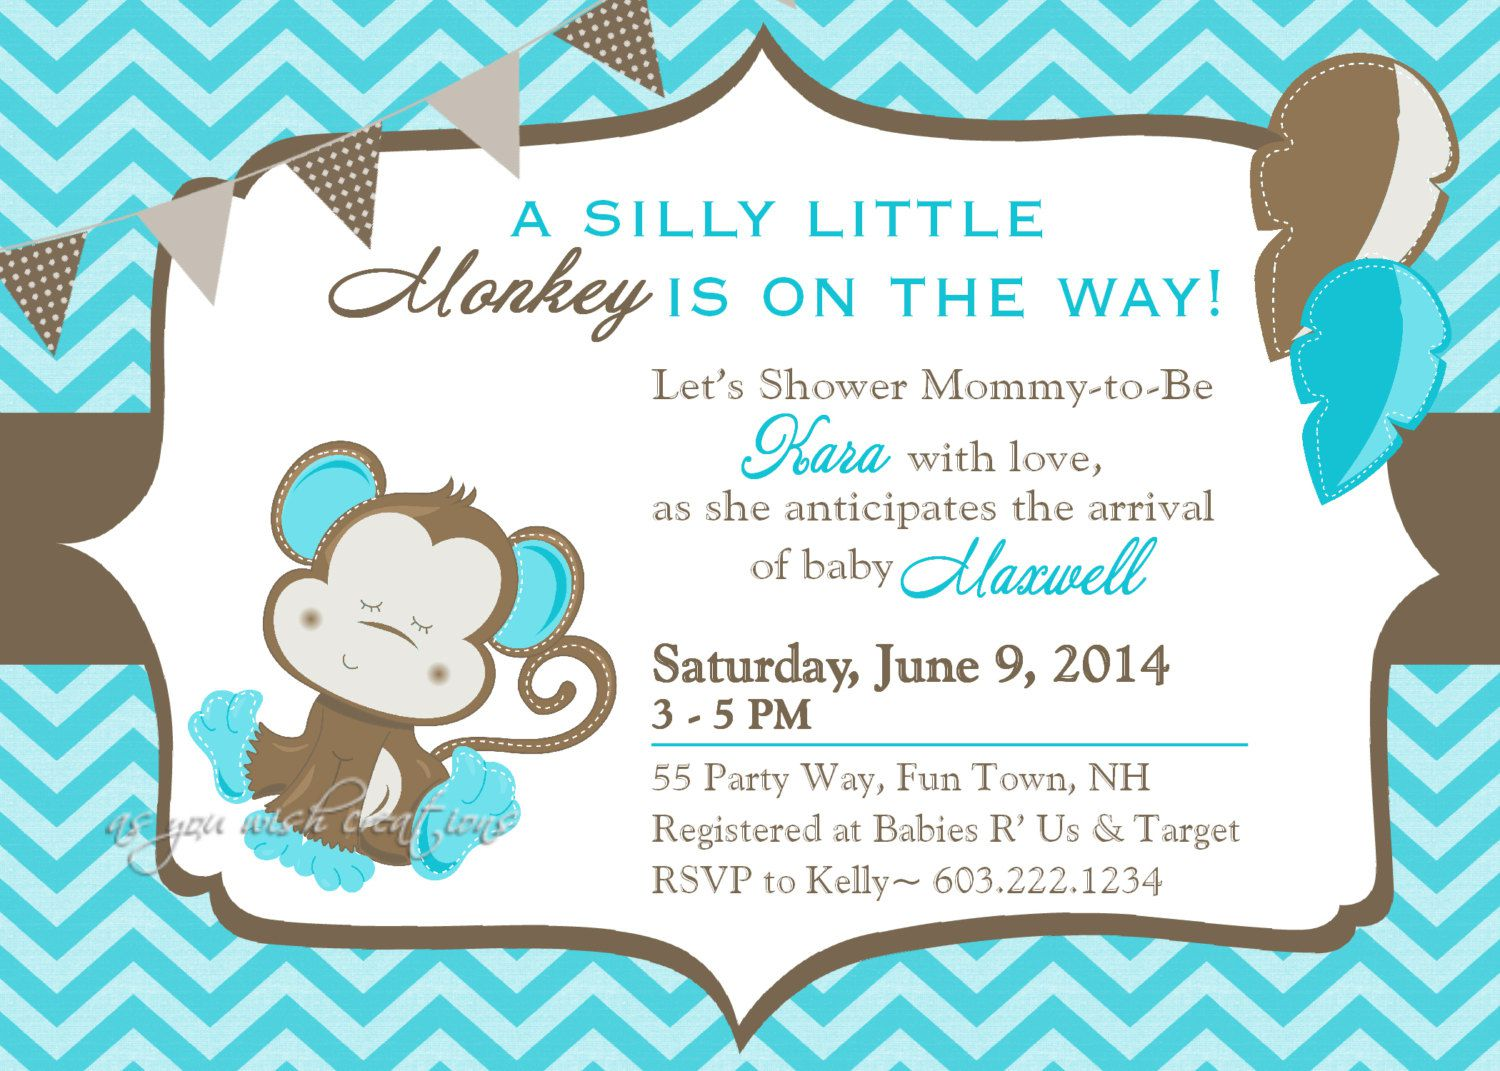 Full Size of Baby Shower:63+ Delightful Cheap Baby Shower Invitations Image Inspirations Cheap Baby Shower Invitations Excellent Cheap Baby Shower Invitations 45 Wyllieforgovernor Unique Cheap Baby Shower Invitations 47